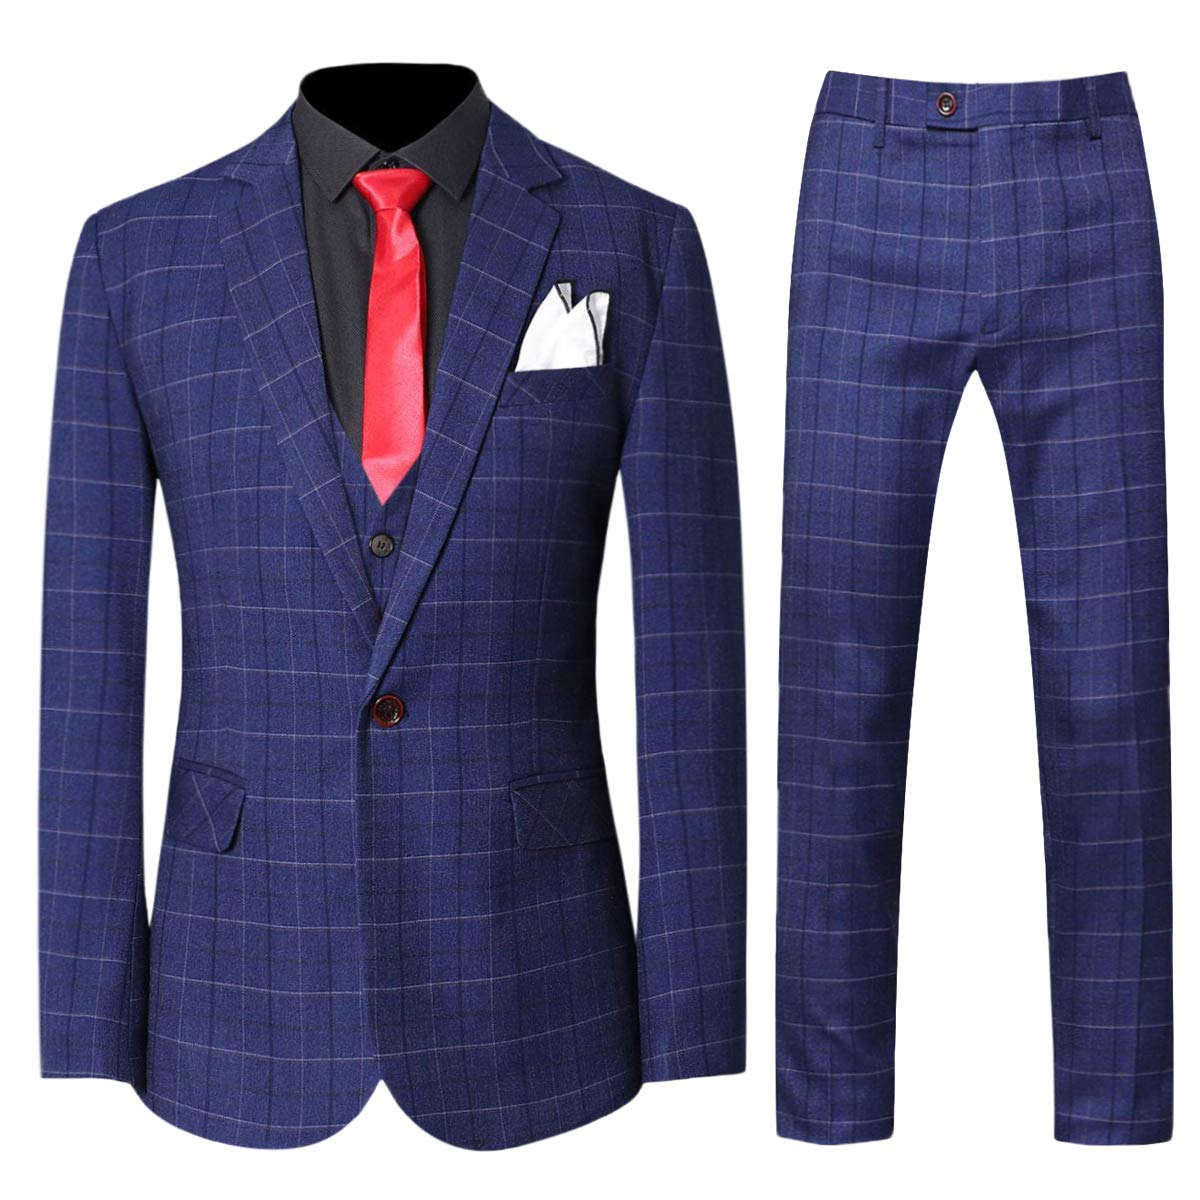 Men's Vintage Style Suits, Classic Suits Mens 3-Piece Plaid Suit Set Modern Fit Jacket Tux Blazer Vest Pants $98.99 AT vintagedancer.com